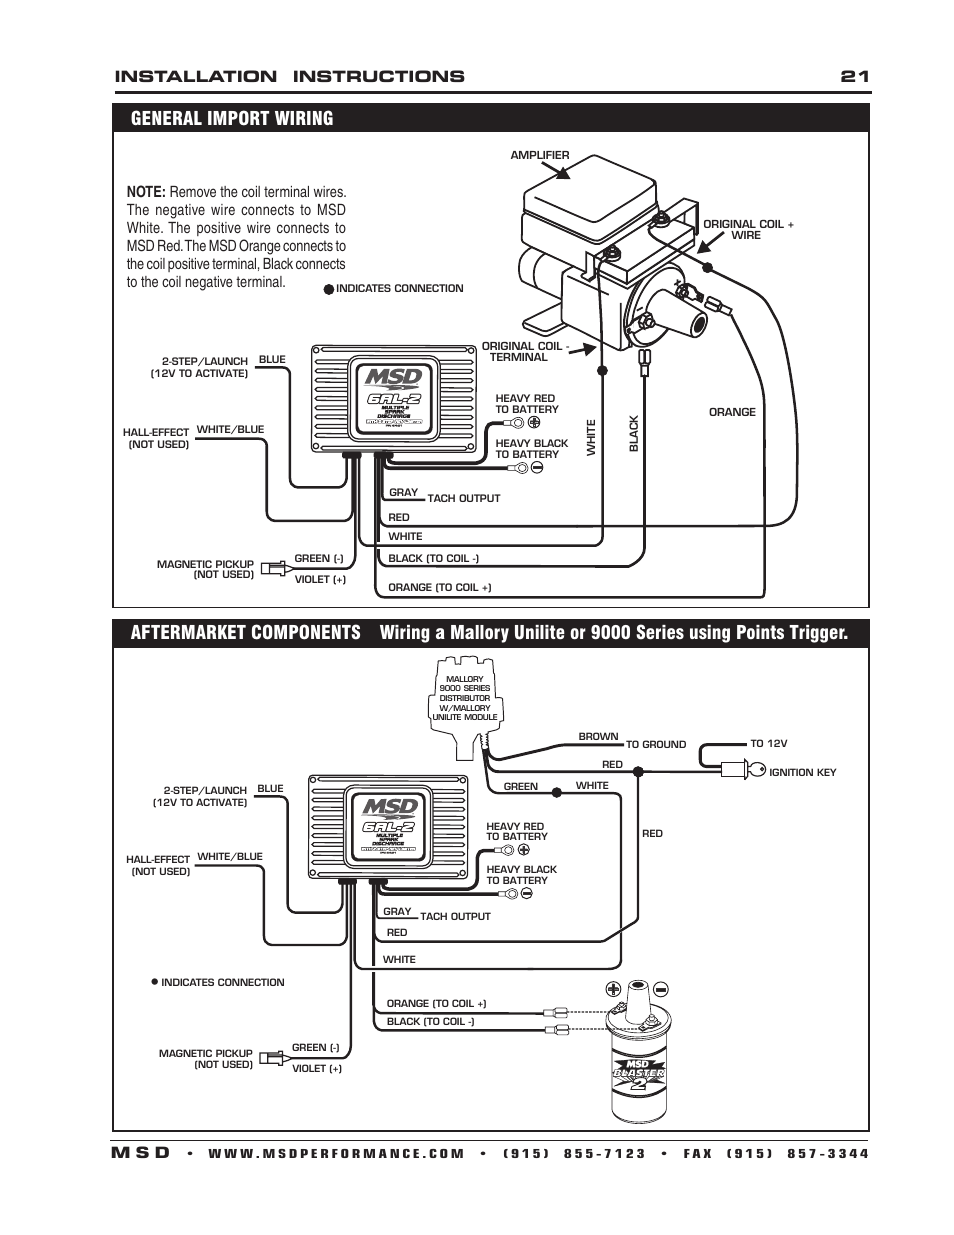 msd 6421 6al 2 ignition control installation page21?resize\\\\\\\=665%2C861 mallory unilite wiring diagram & how do i wire my mallory mallory 6al wiring diagram at mifinder.co